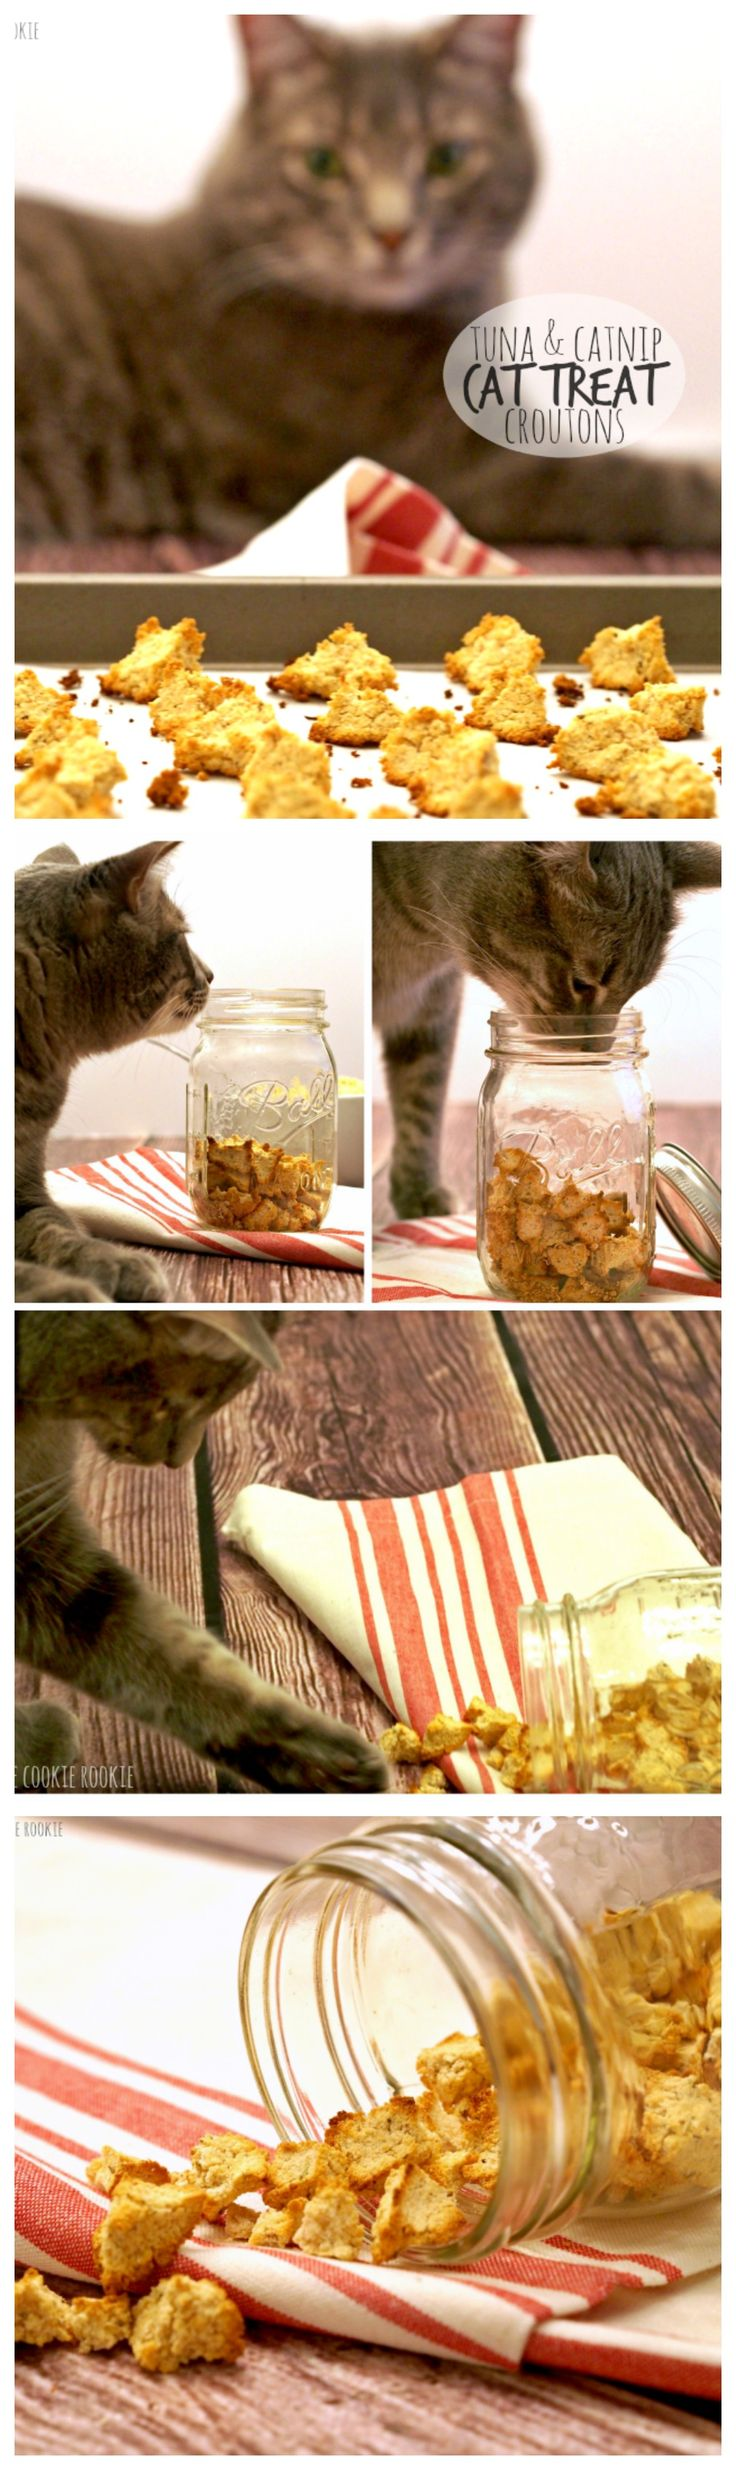 HOMEMADE CAT TREATS! Homemade Salmon & Catnip Cat Treat Croutons!